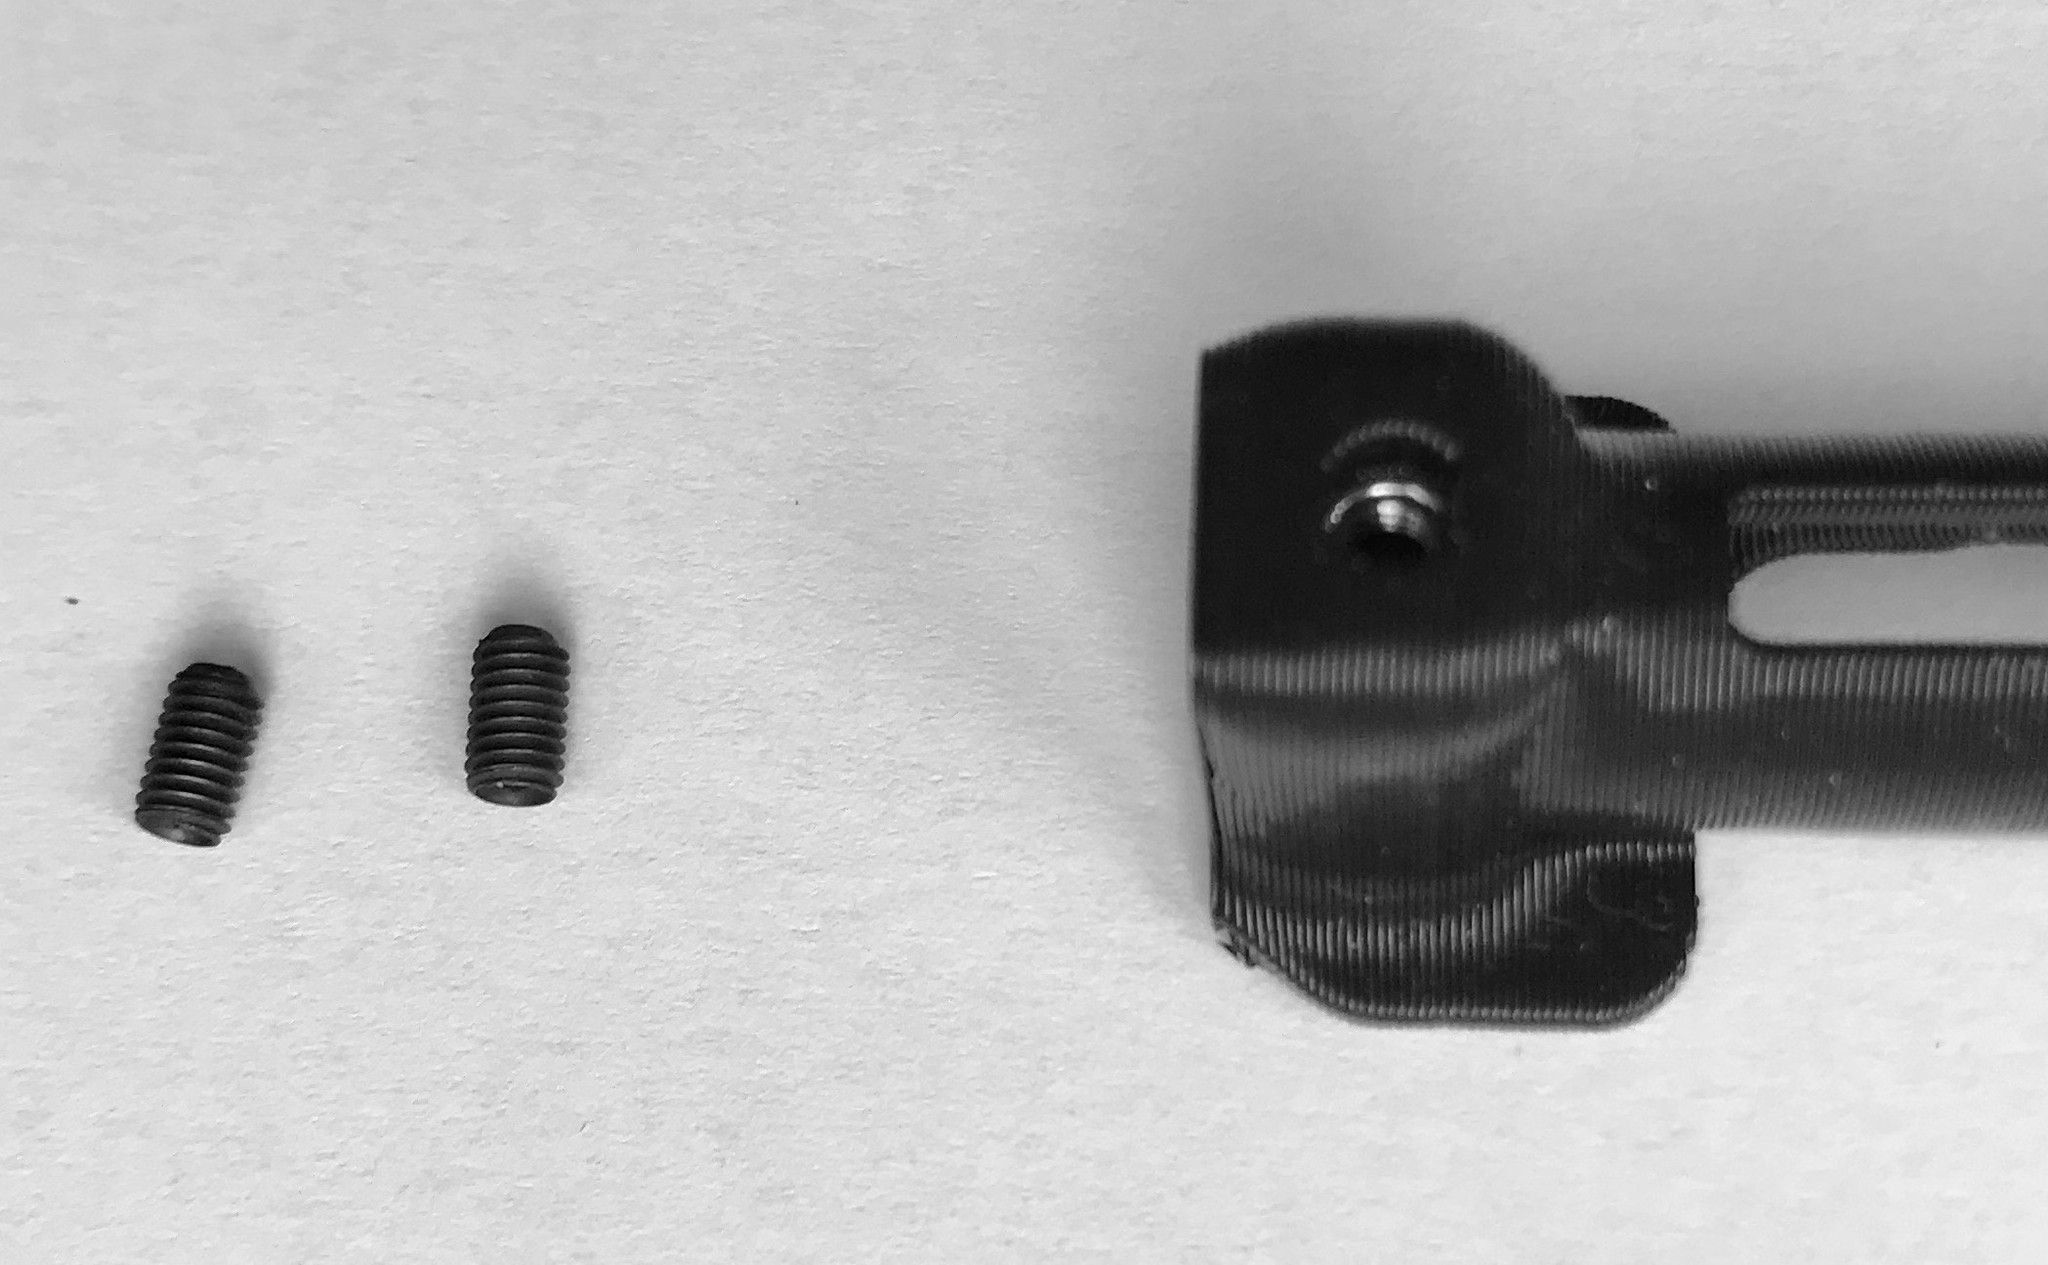 mini screws for transmitter attachment